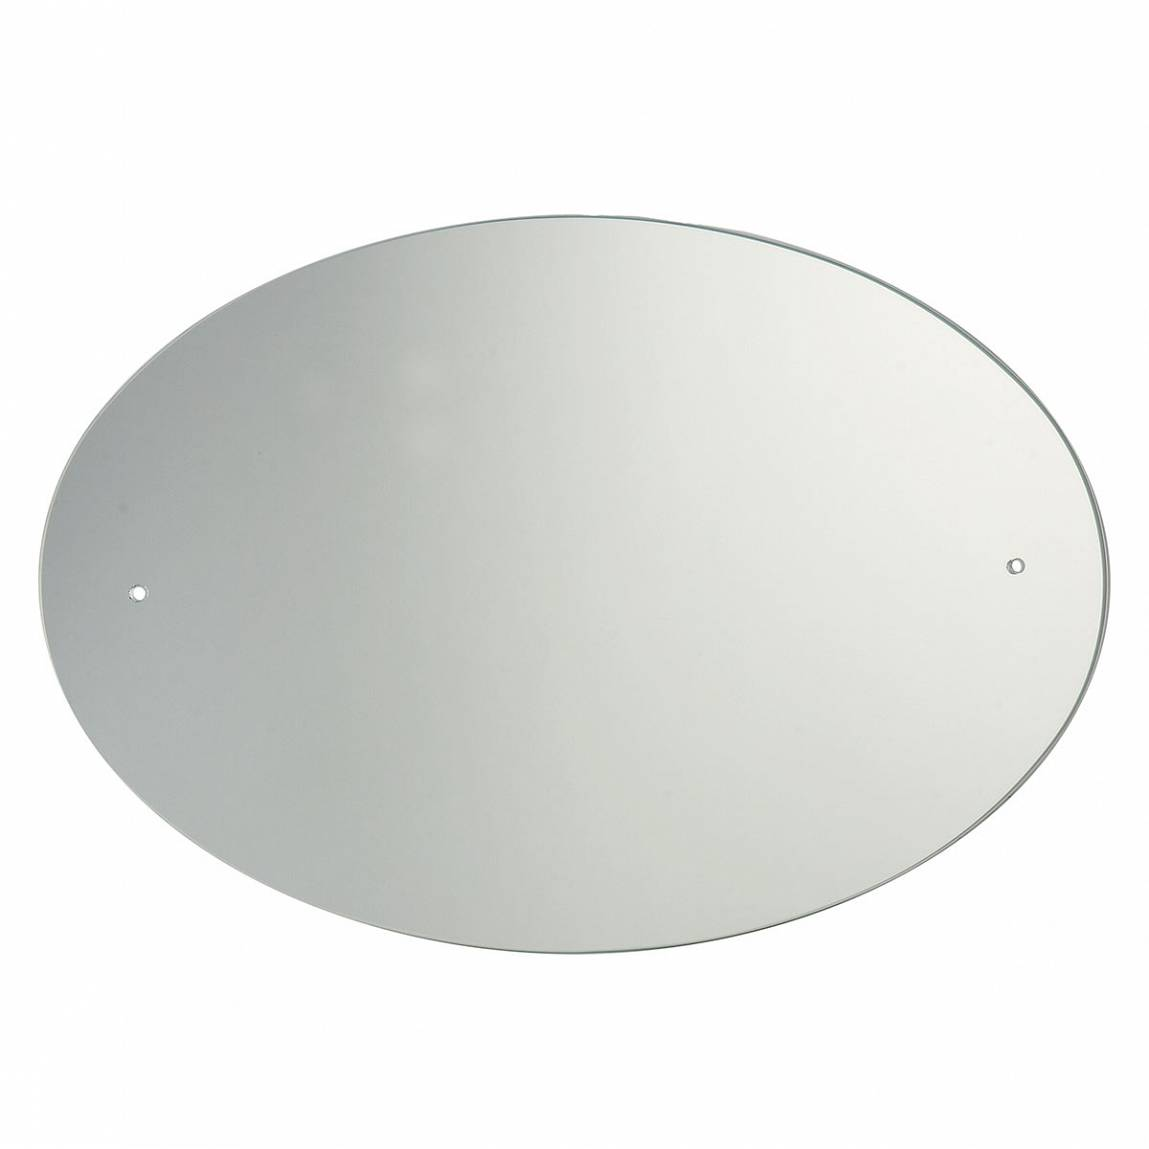 Image of Oval Drilled Mirror 60x45cm